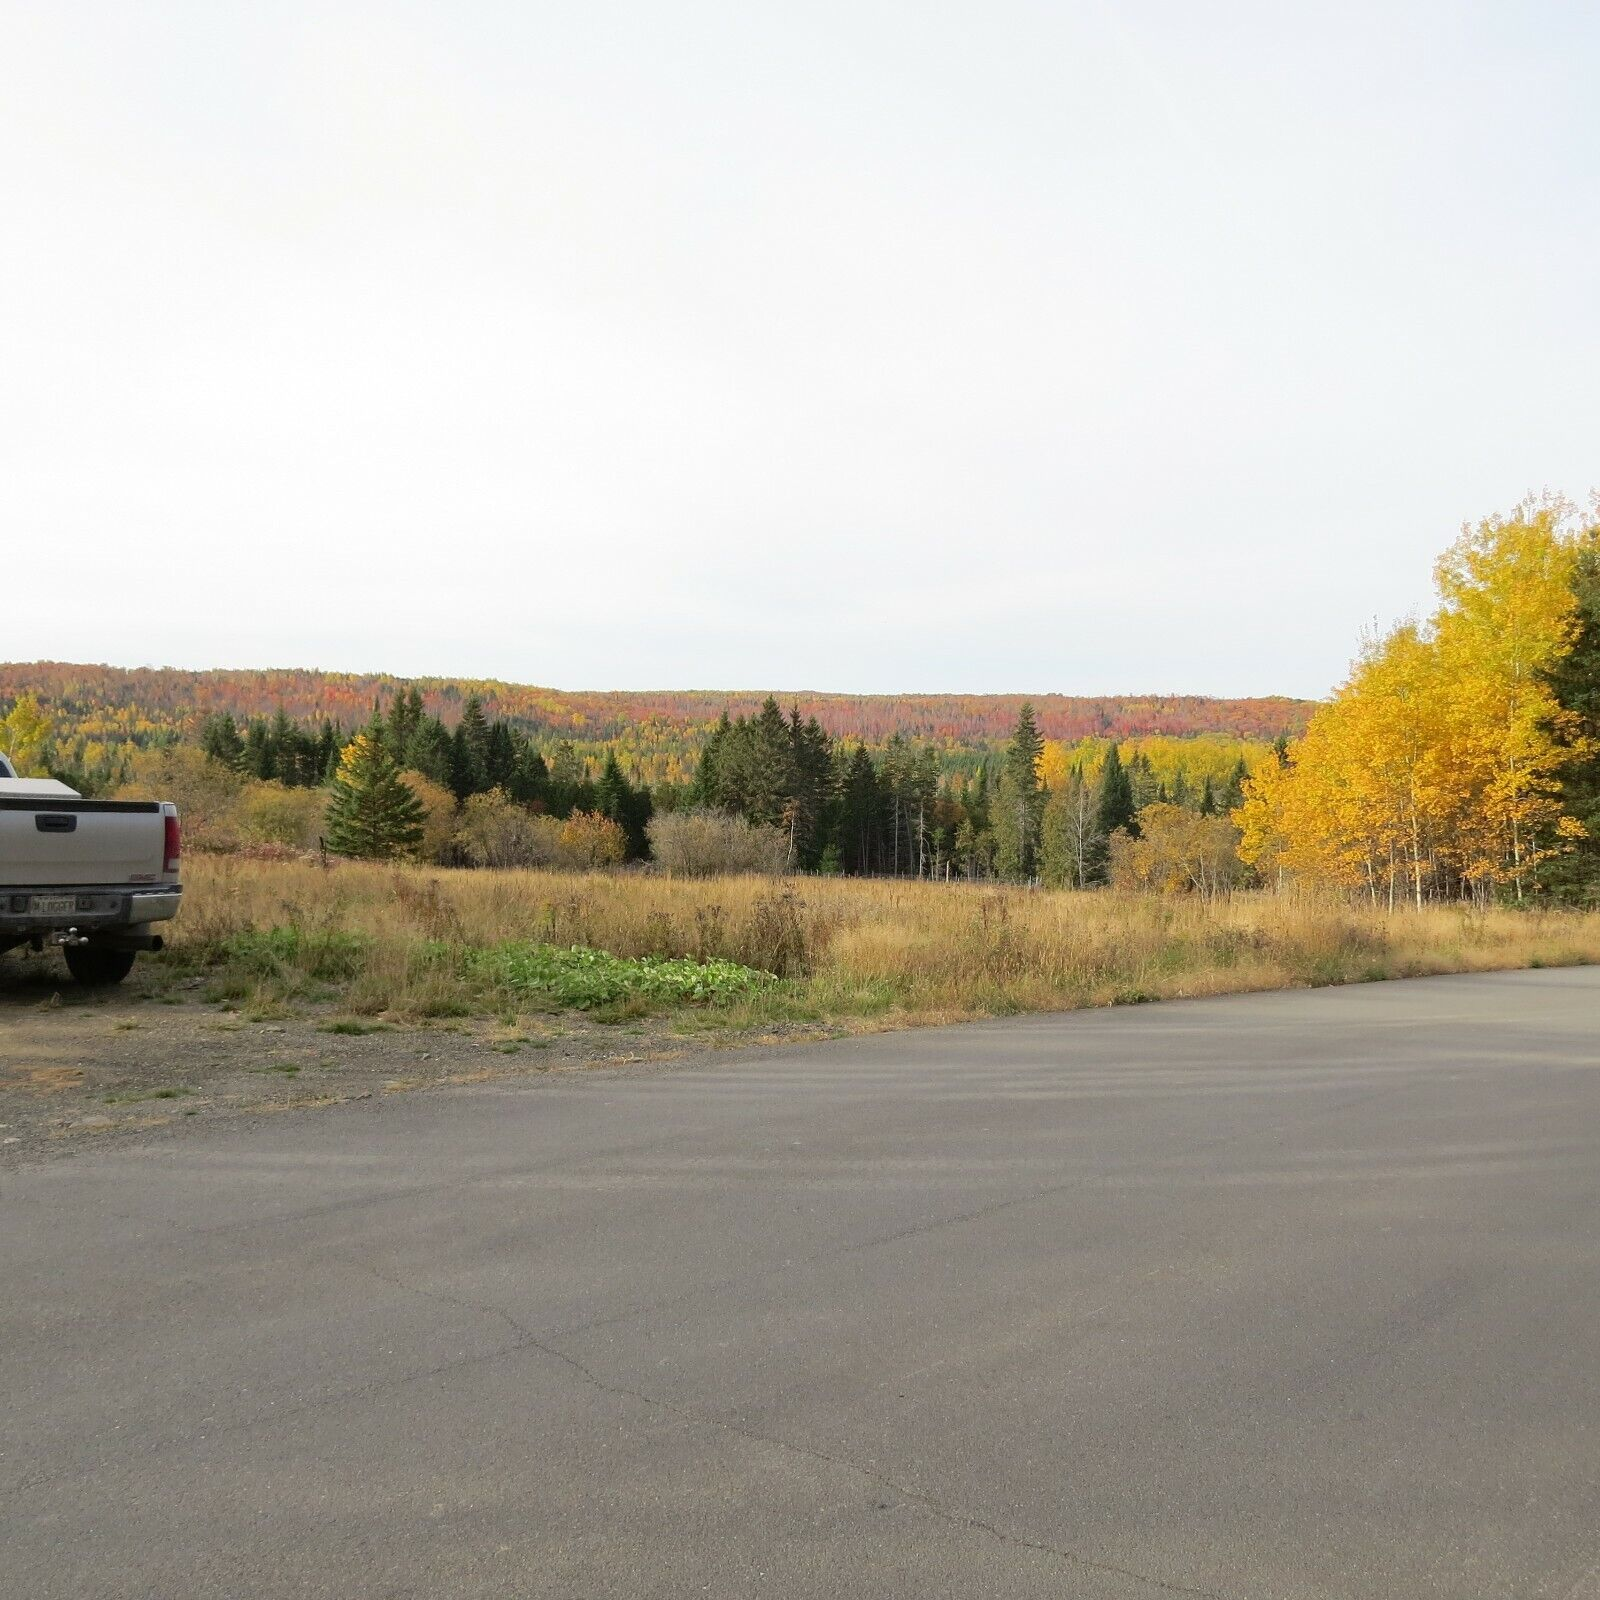 OWN 30 ACRES /- OF LAND IN NORTHERN MAINE  - $560.00